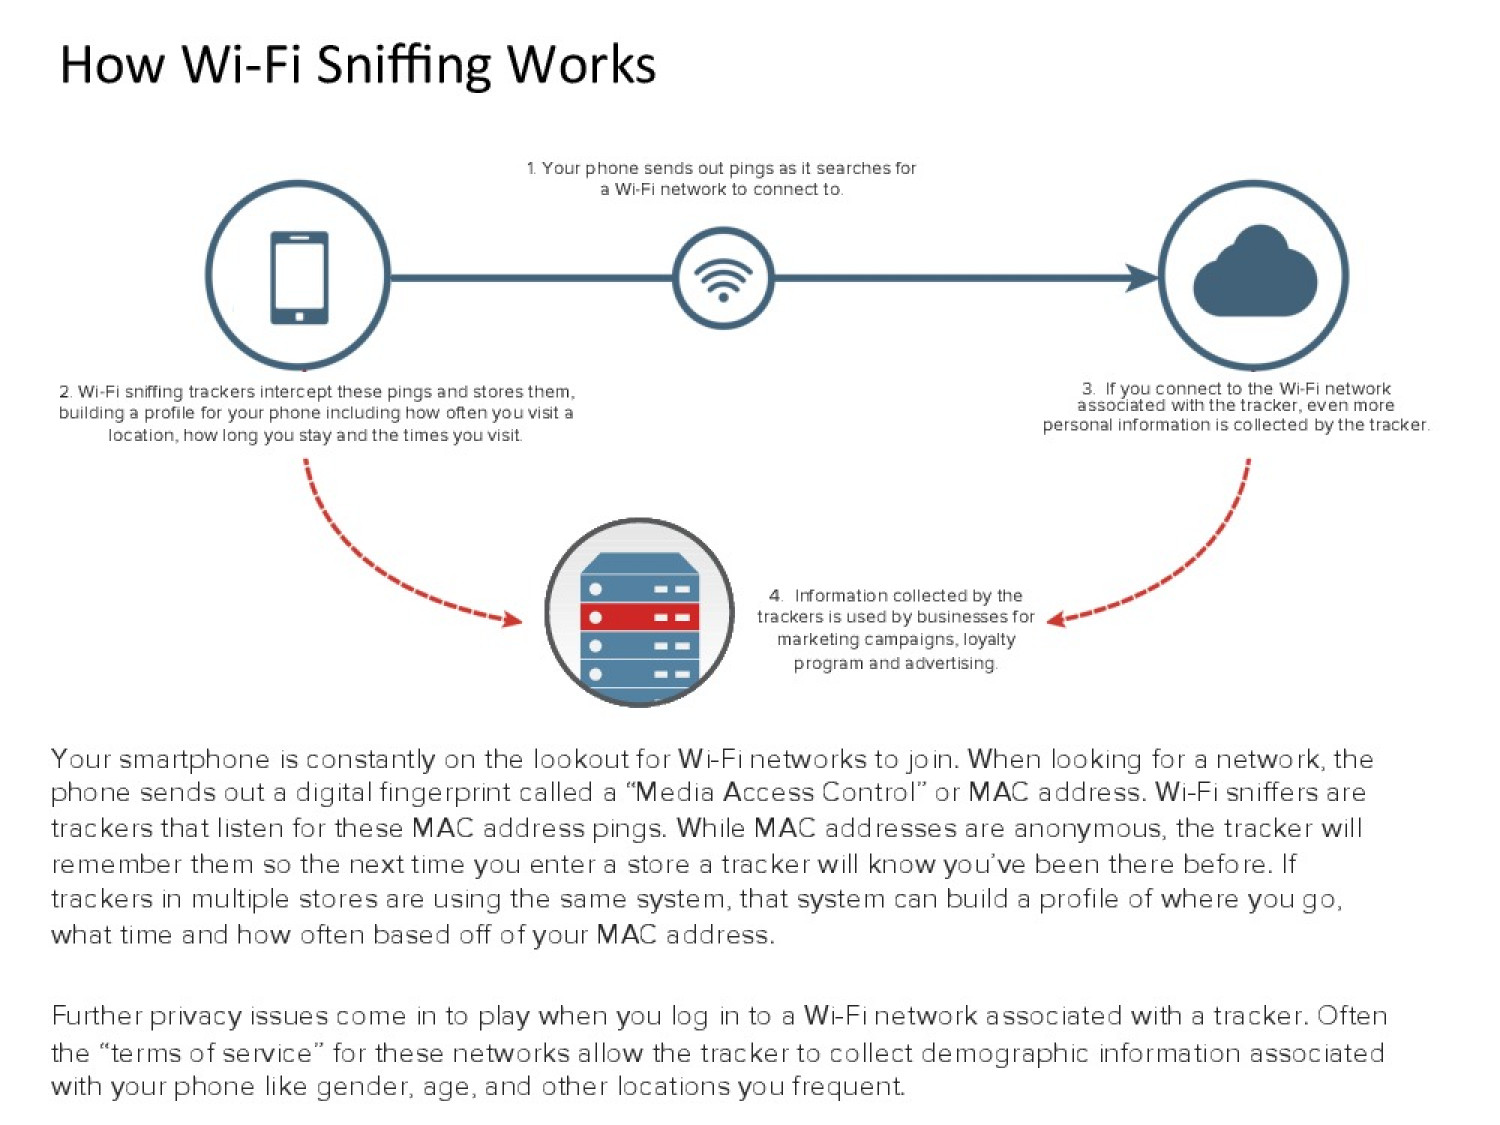 Wi-Fi Sniffing Slide for 2015 SXSW Interactive Conference  Infographic